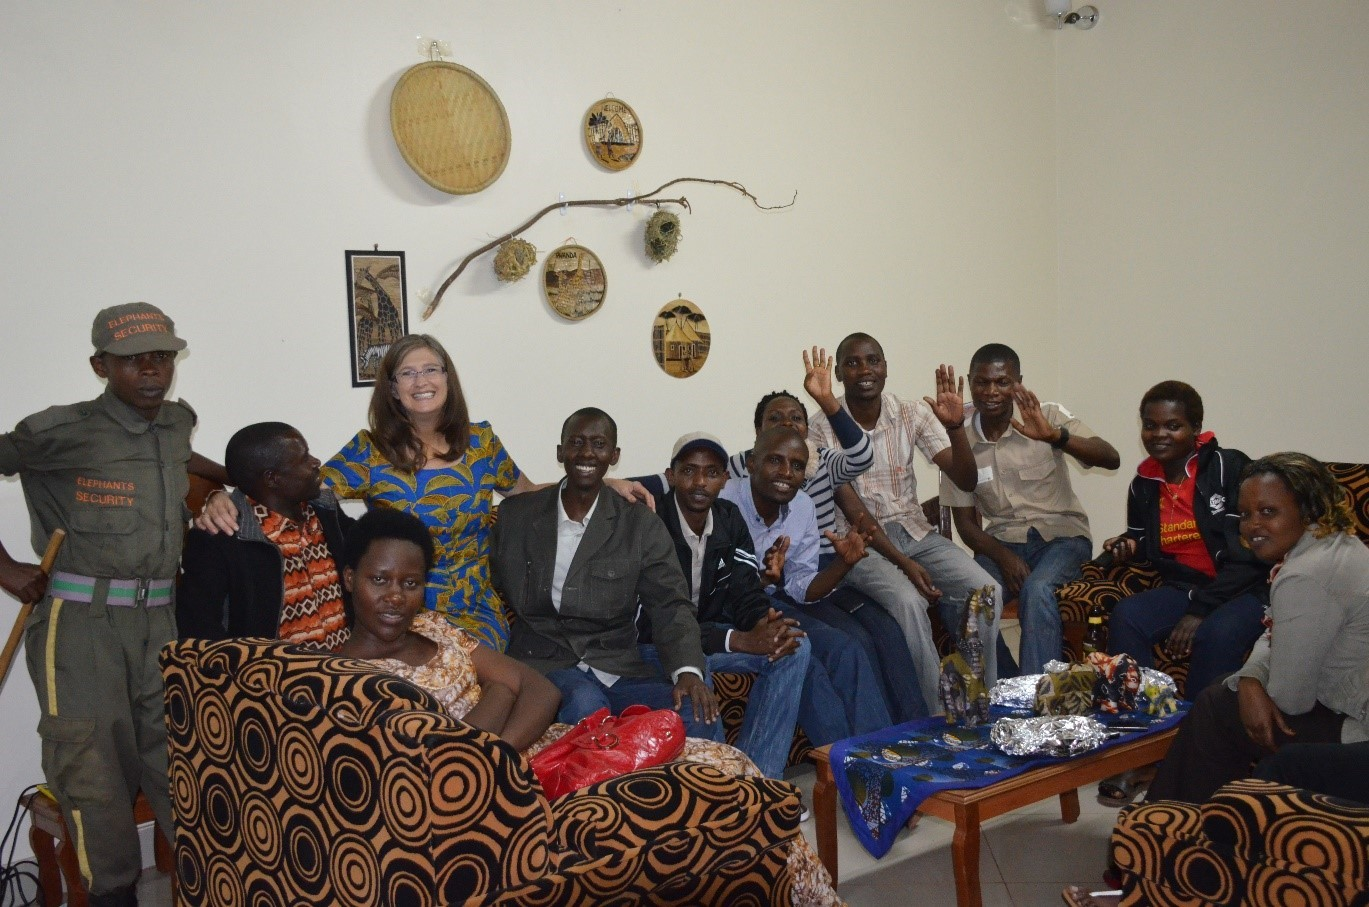 AANP Fellow Maria C. Kidner is surrounded by a group of health care providers in Rwanda